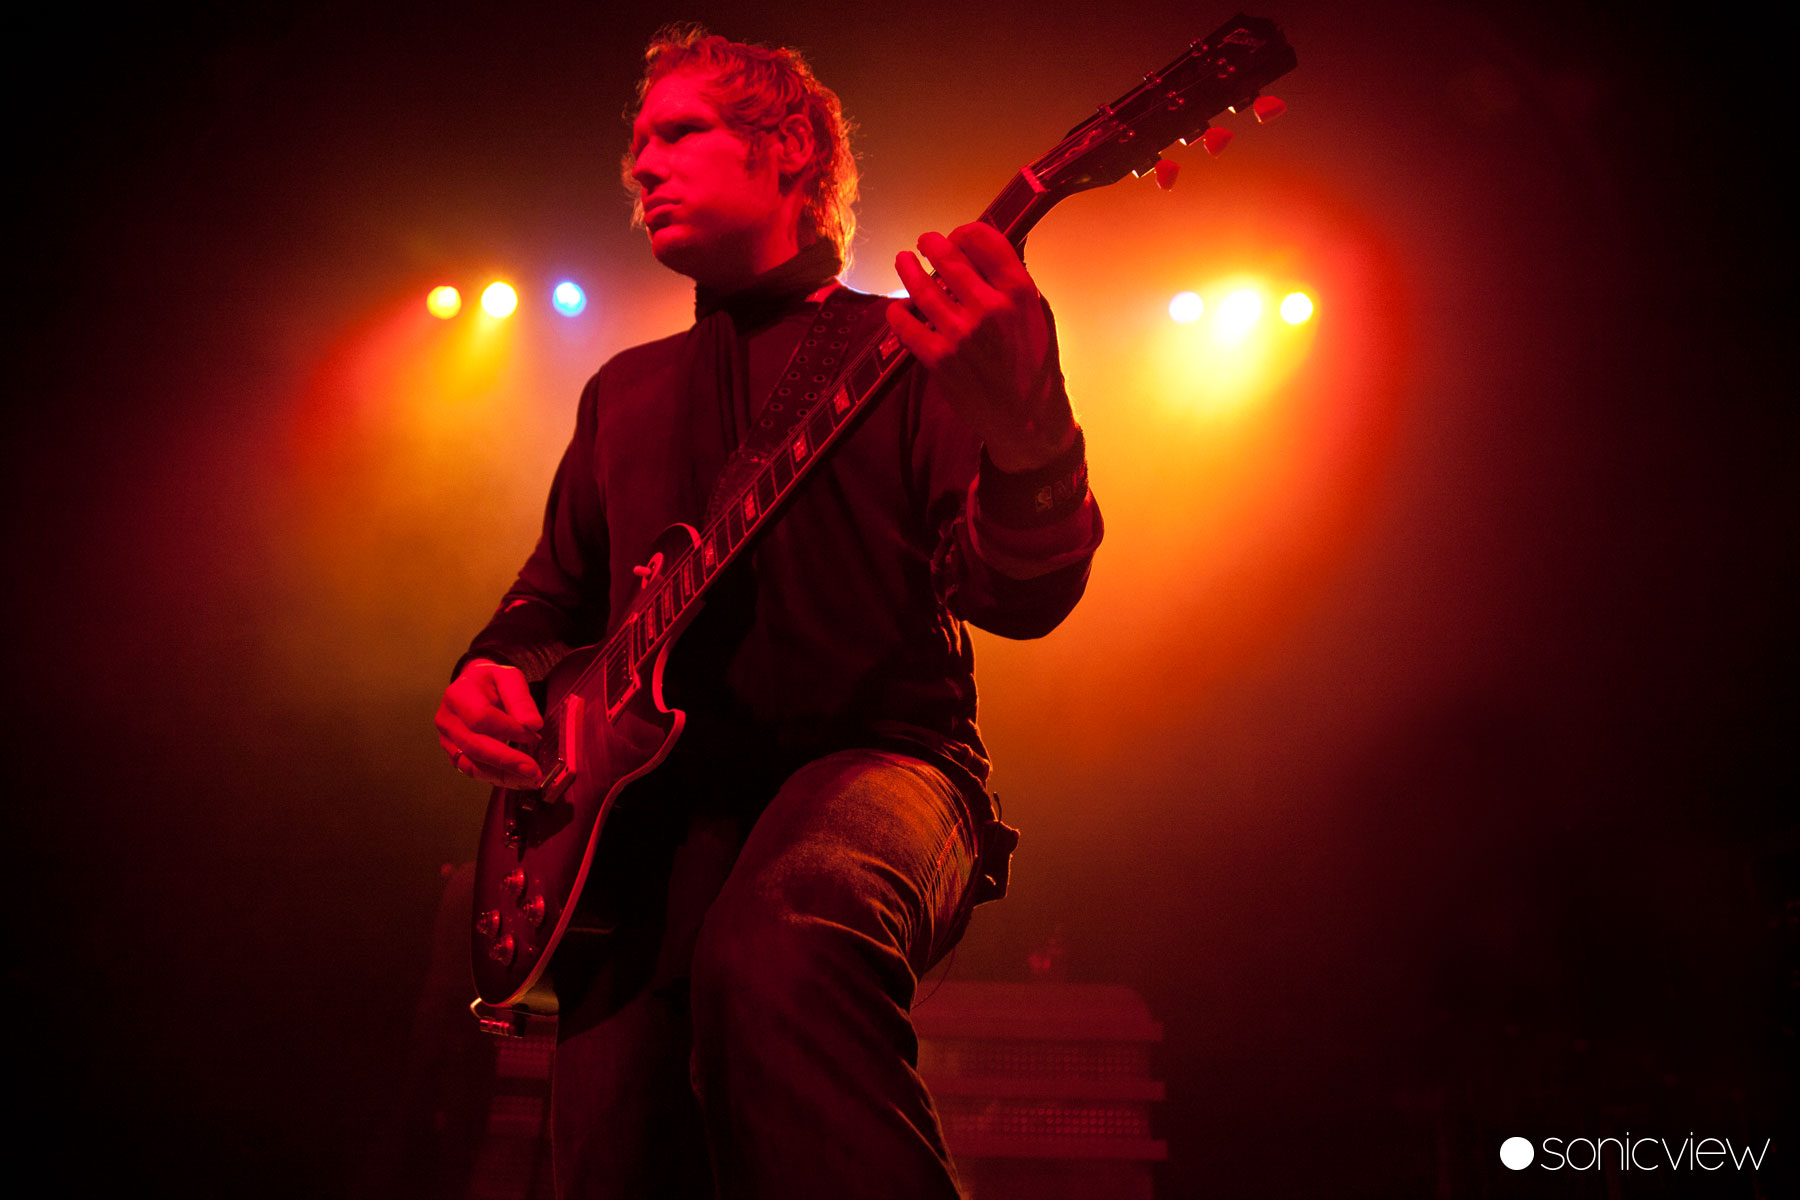 3 Doors Down: Live at Vega 2012, Copenhagen, Denmark